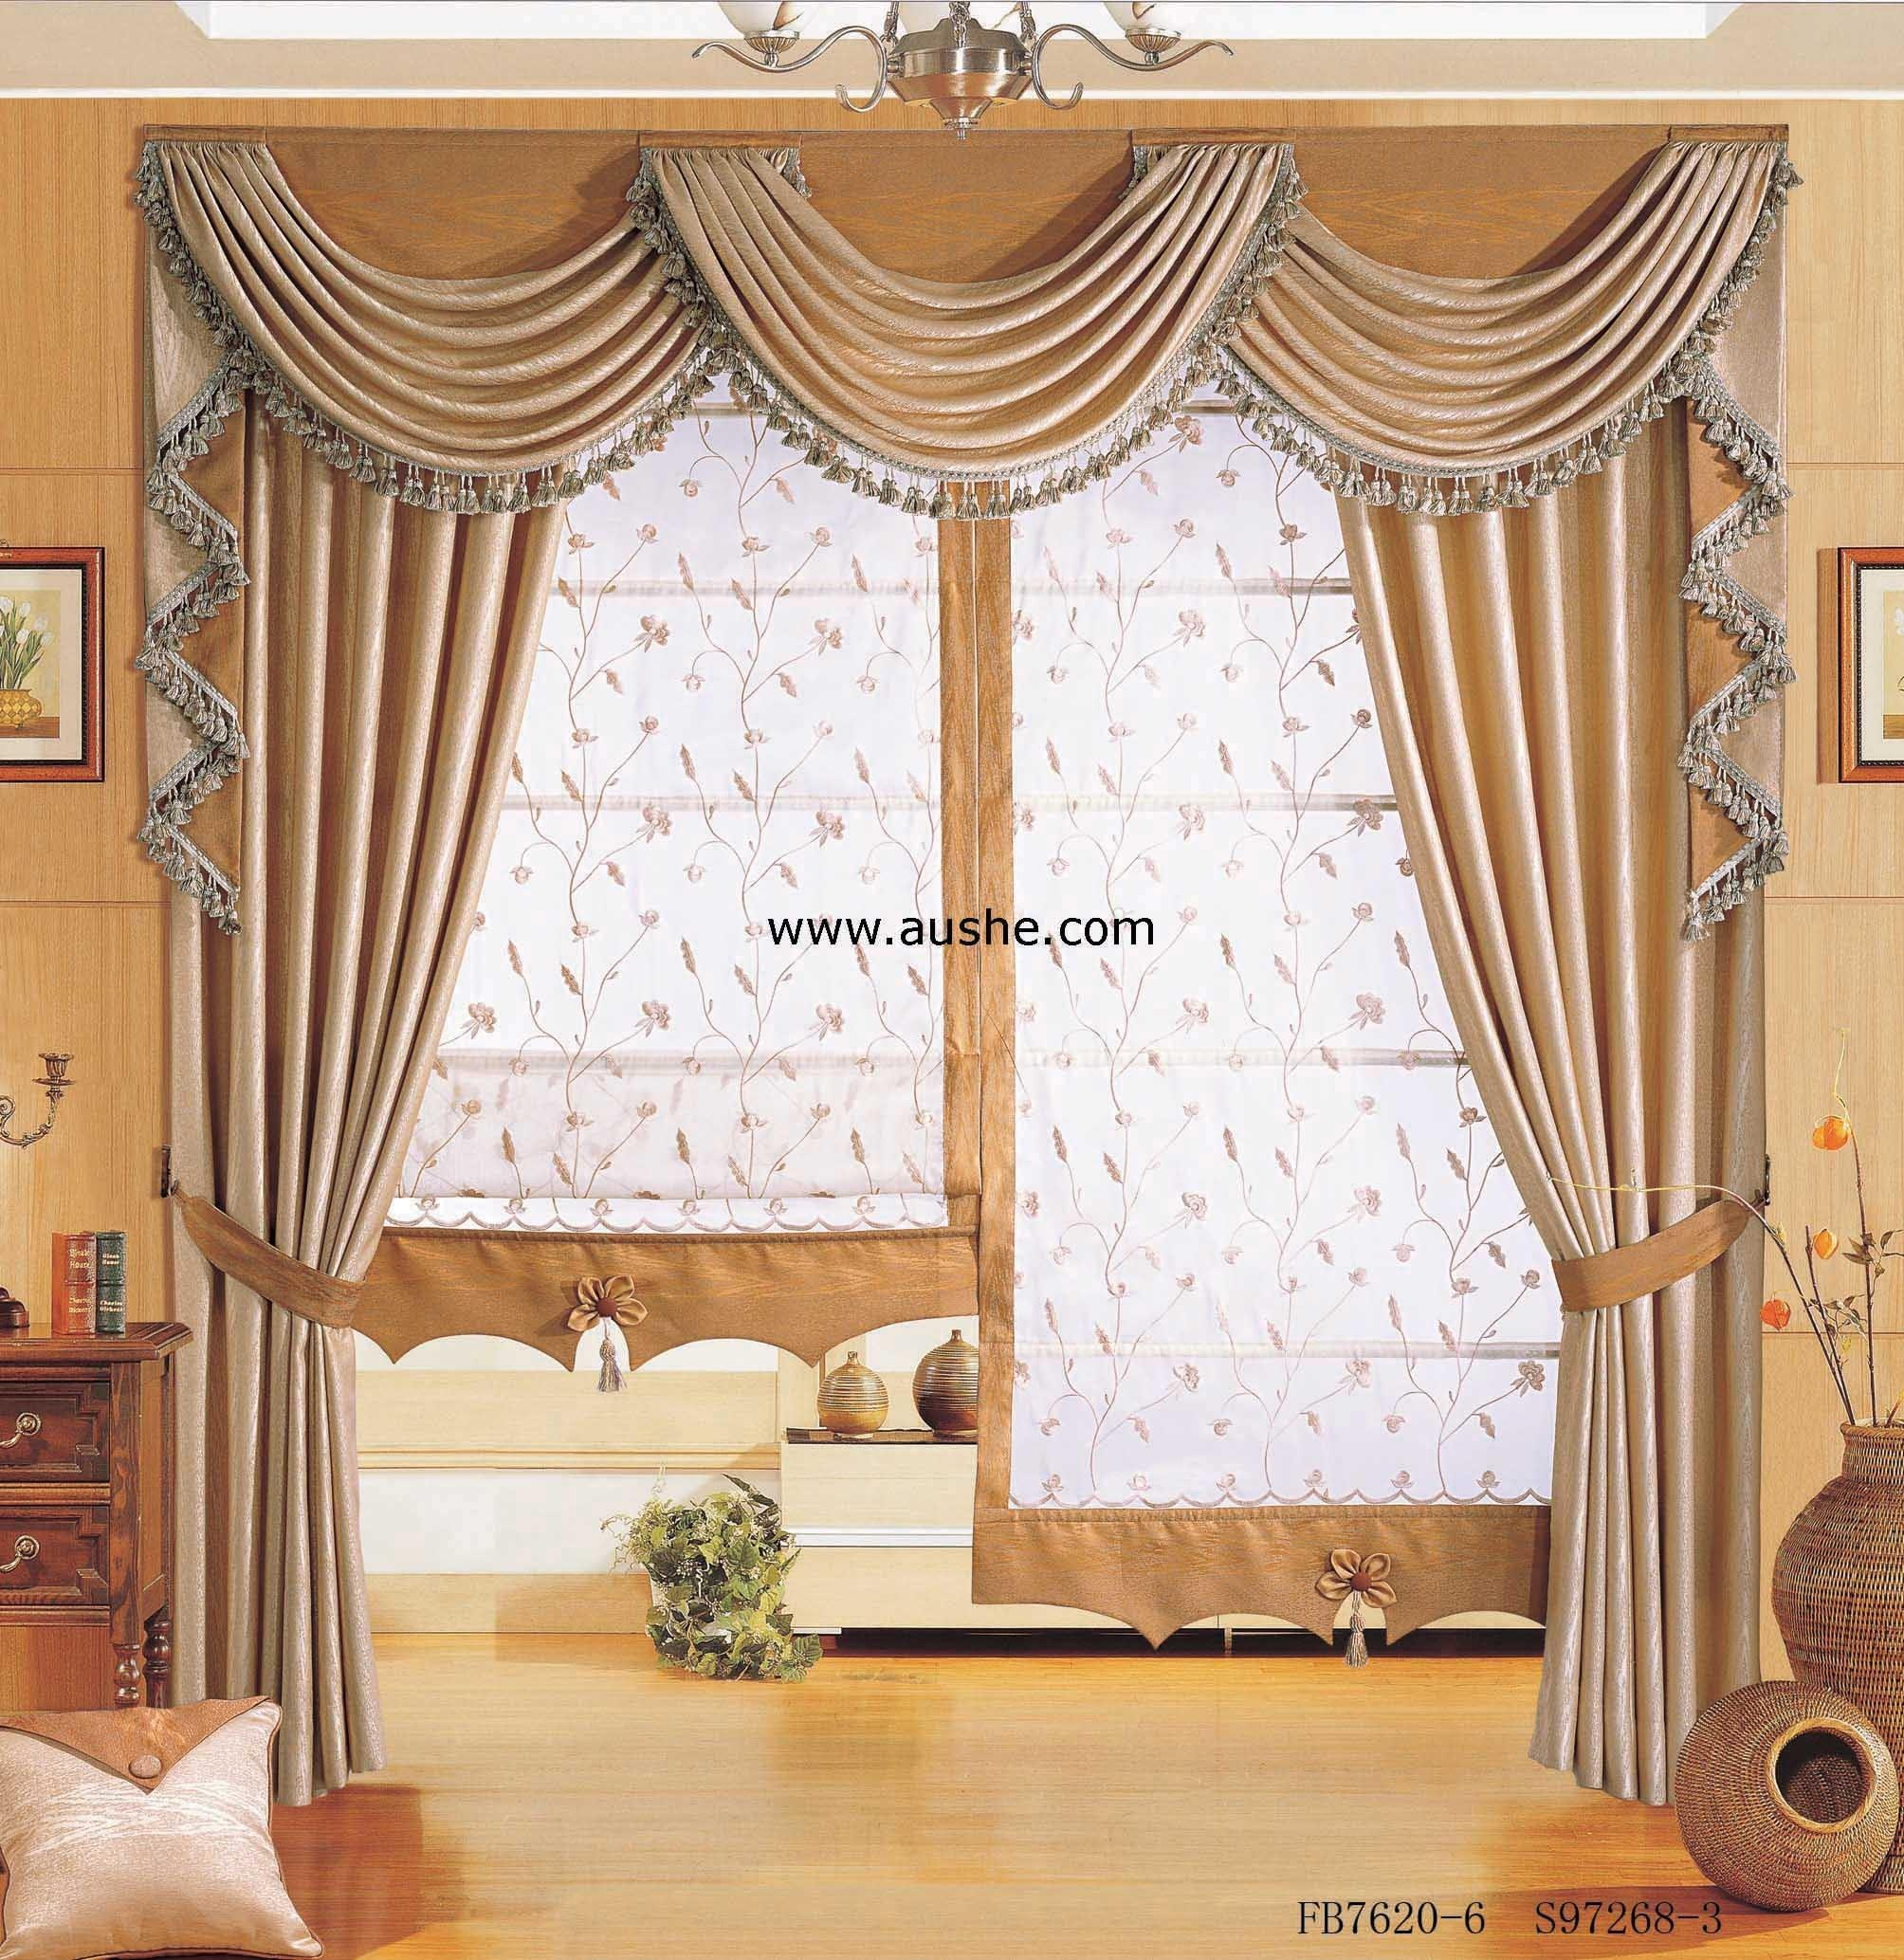 Jcpenney Sheer Curtains Valance Drapes Decoratorist 127667